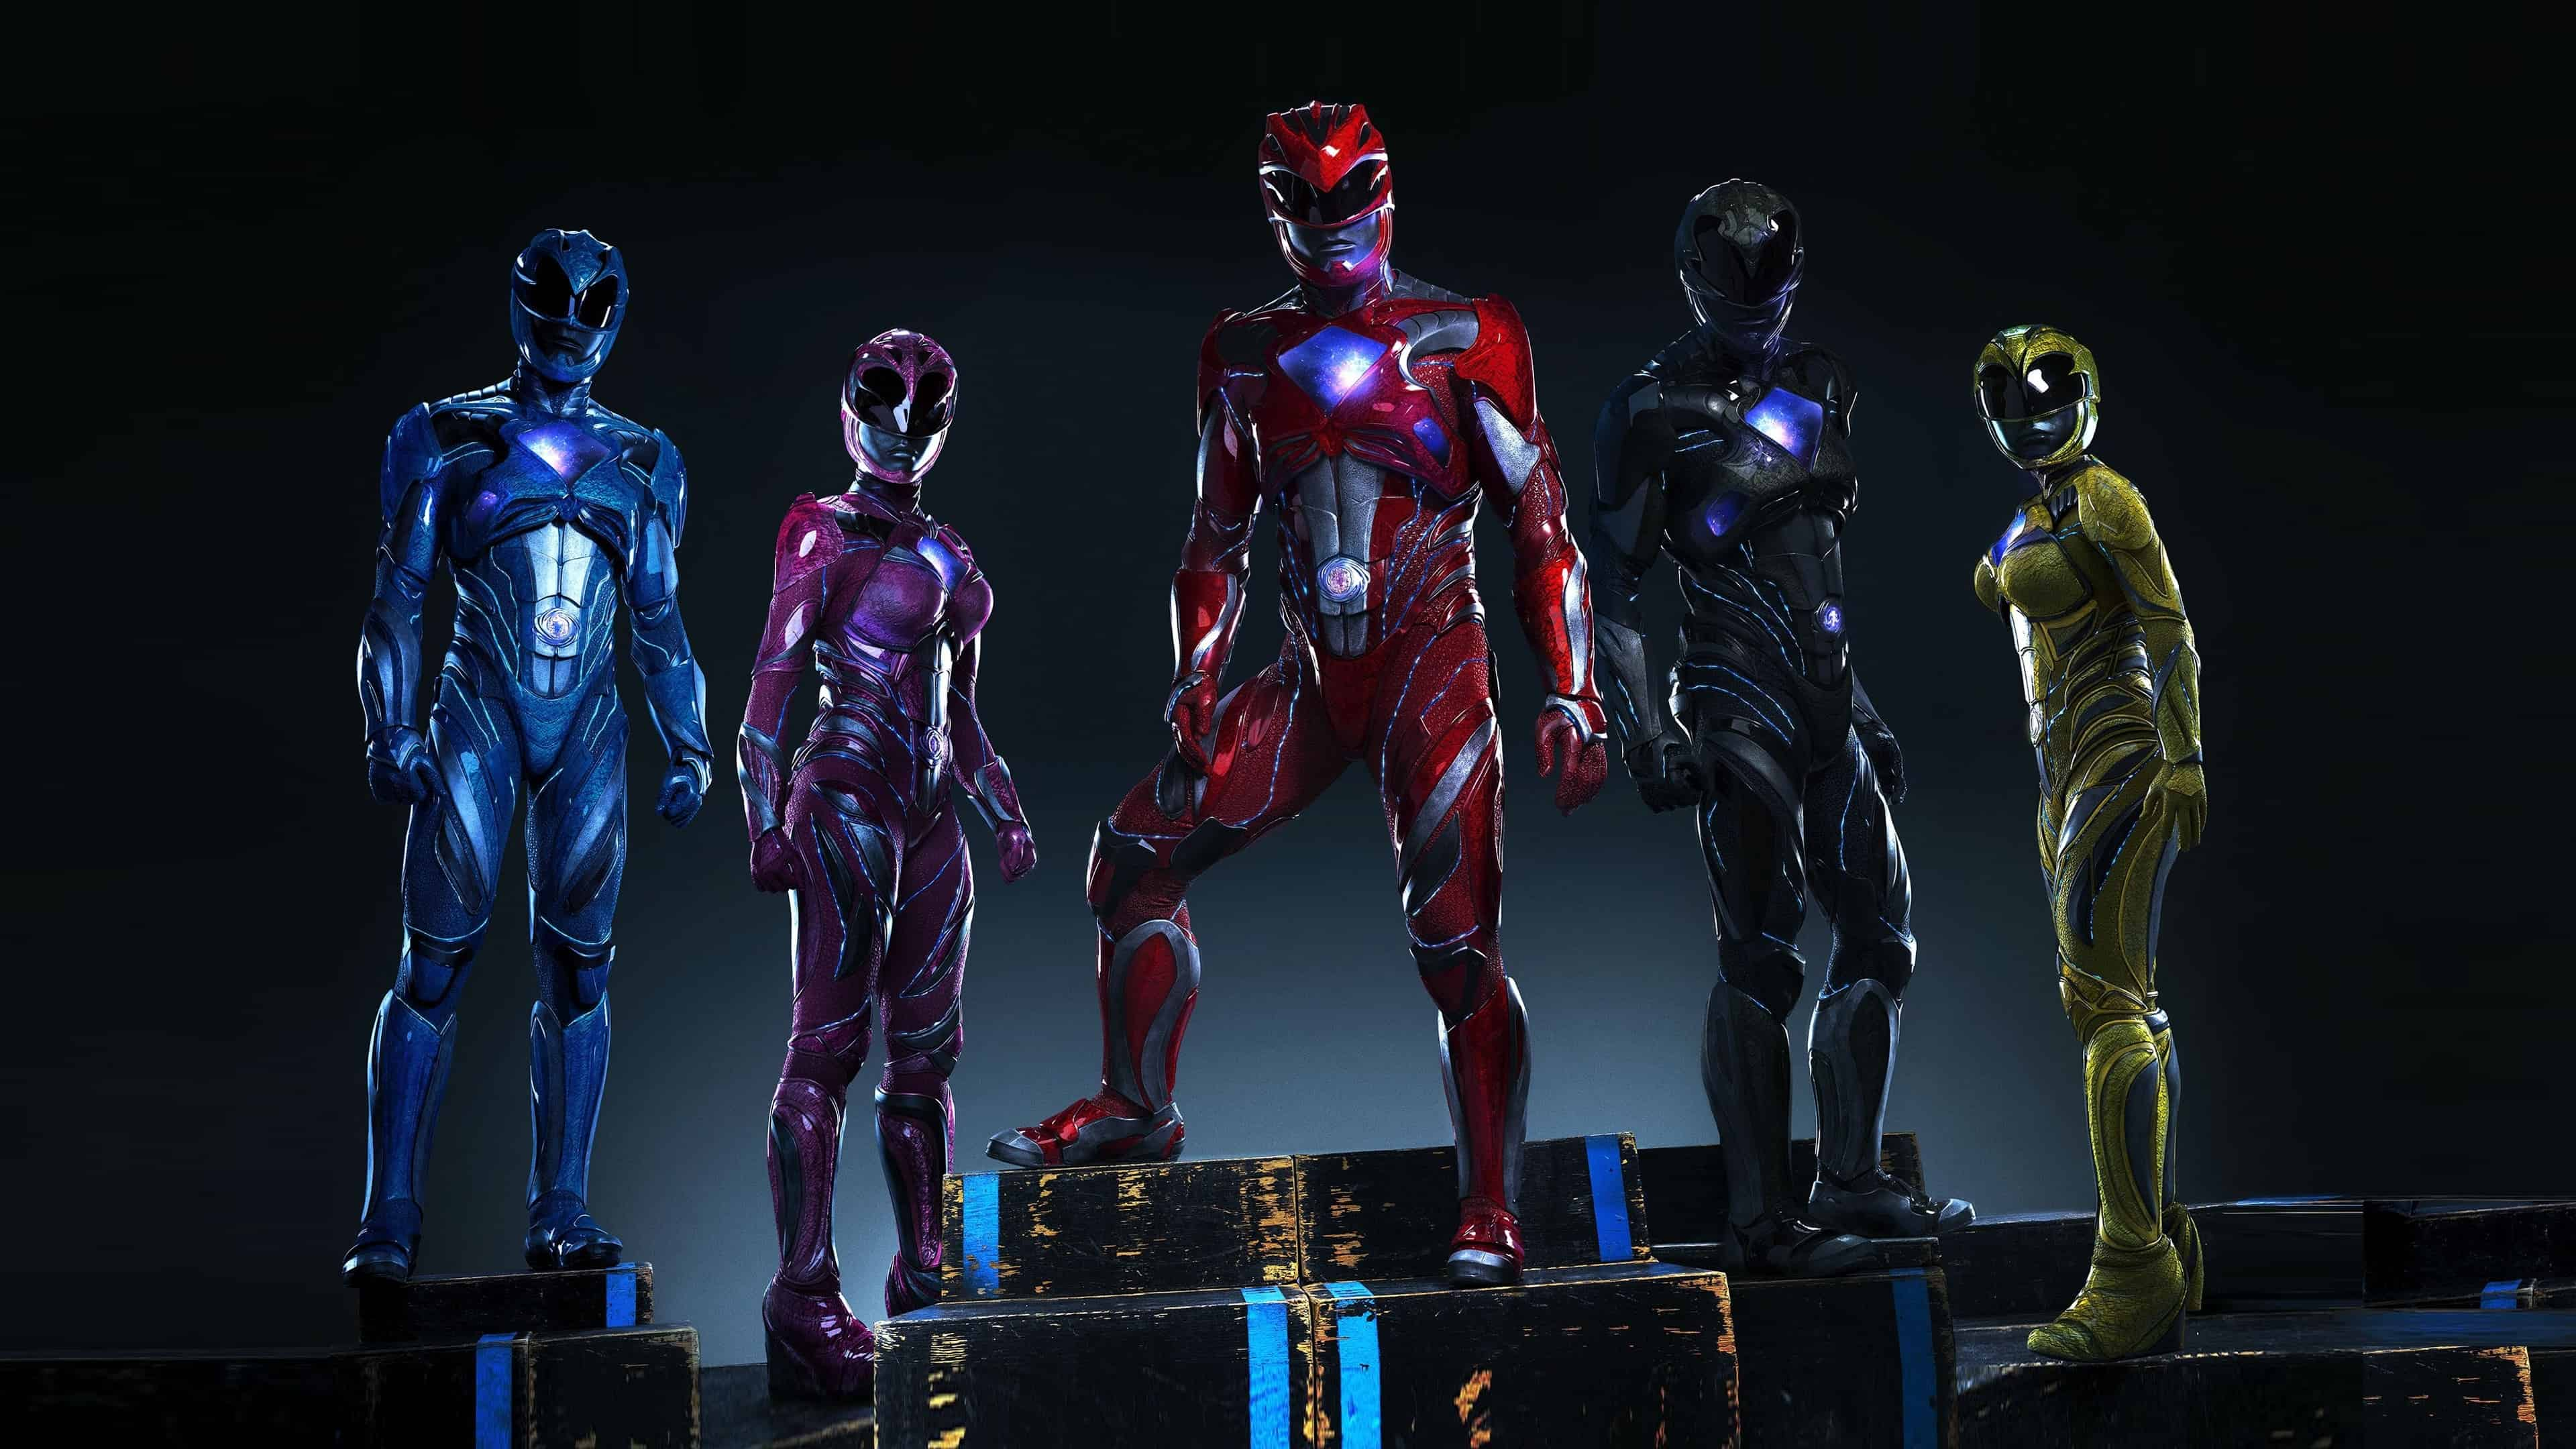 power rangers movie4k